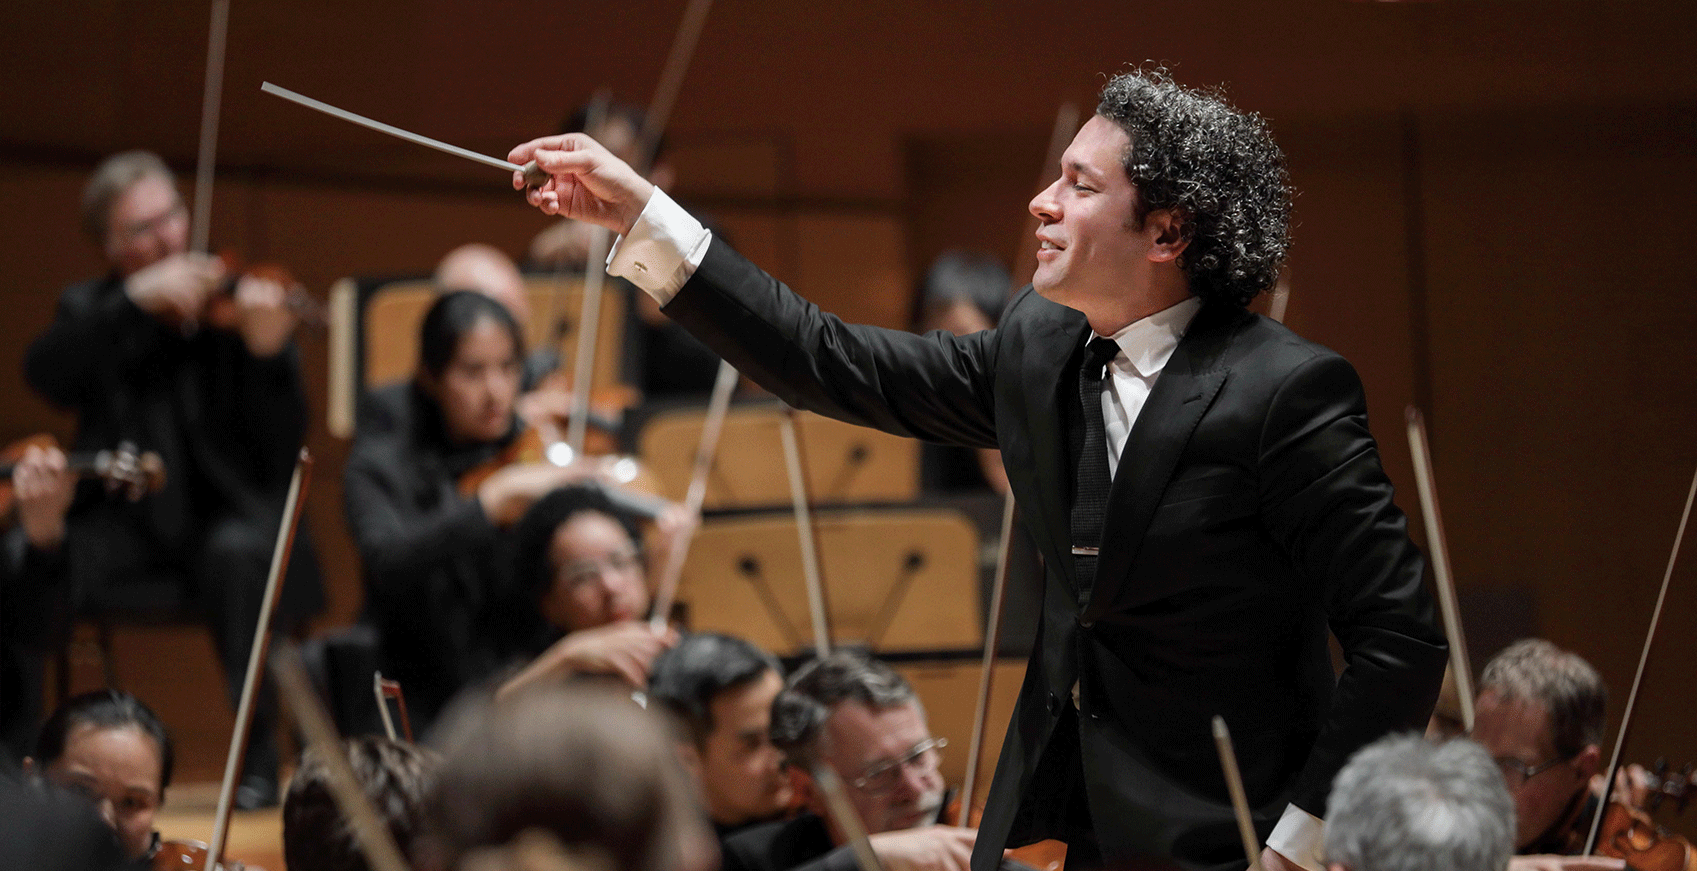 Gustavo Dudamel conducts the Los Angeles Philharmonic orchestra